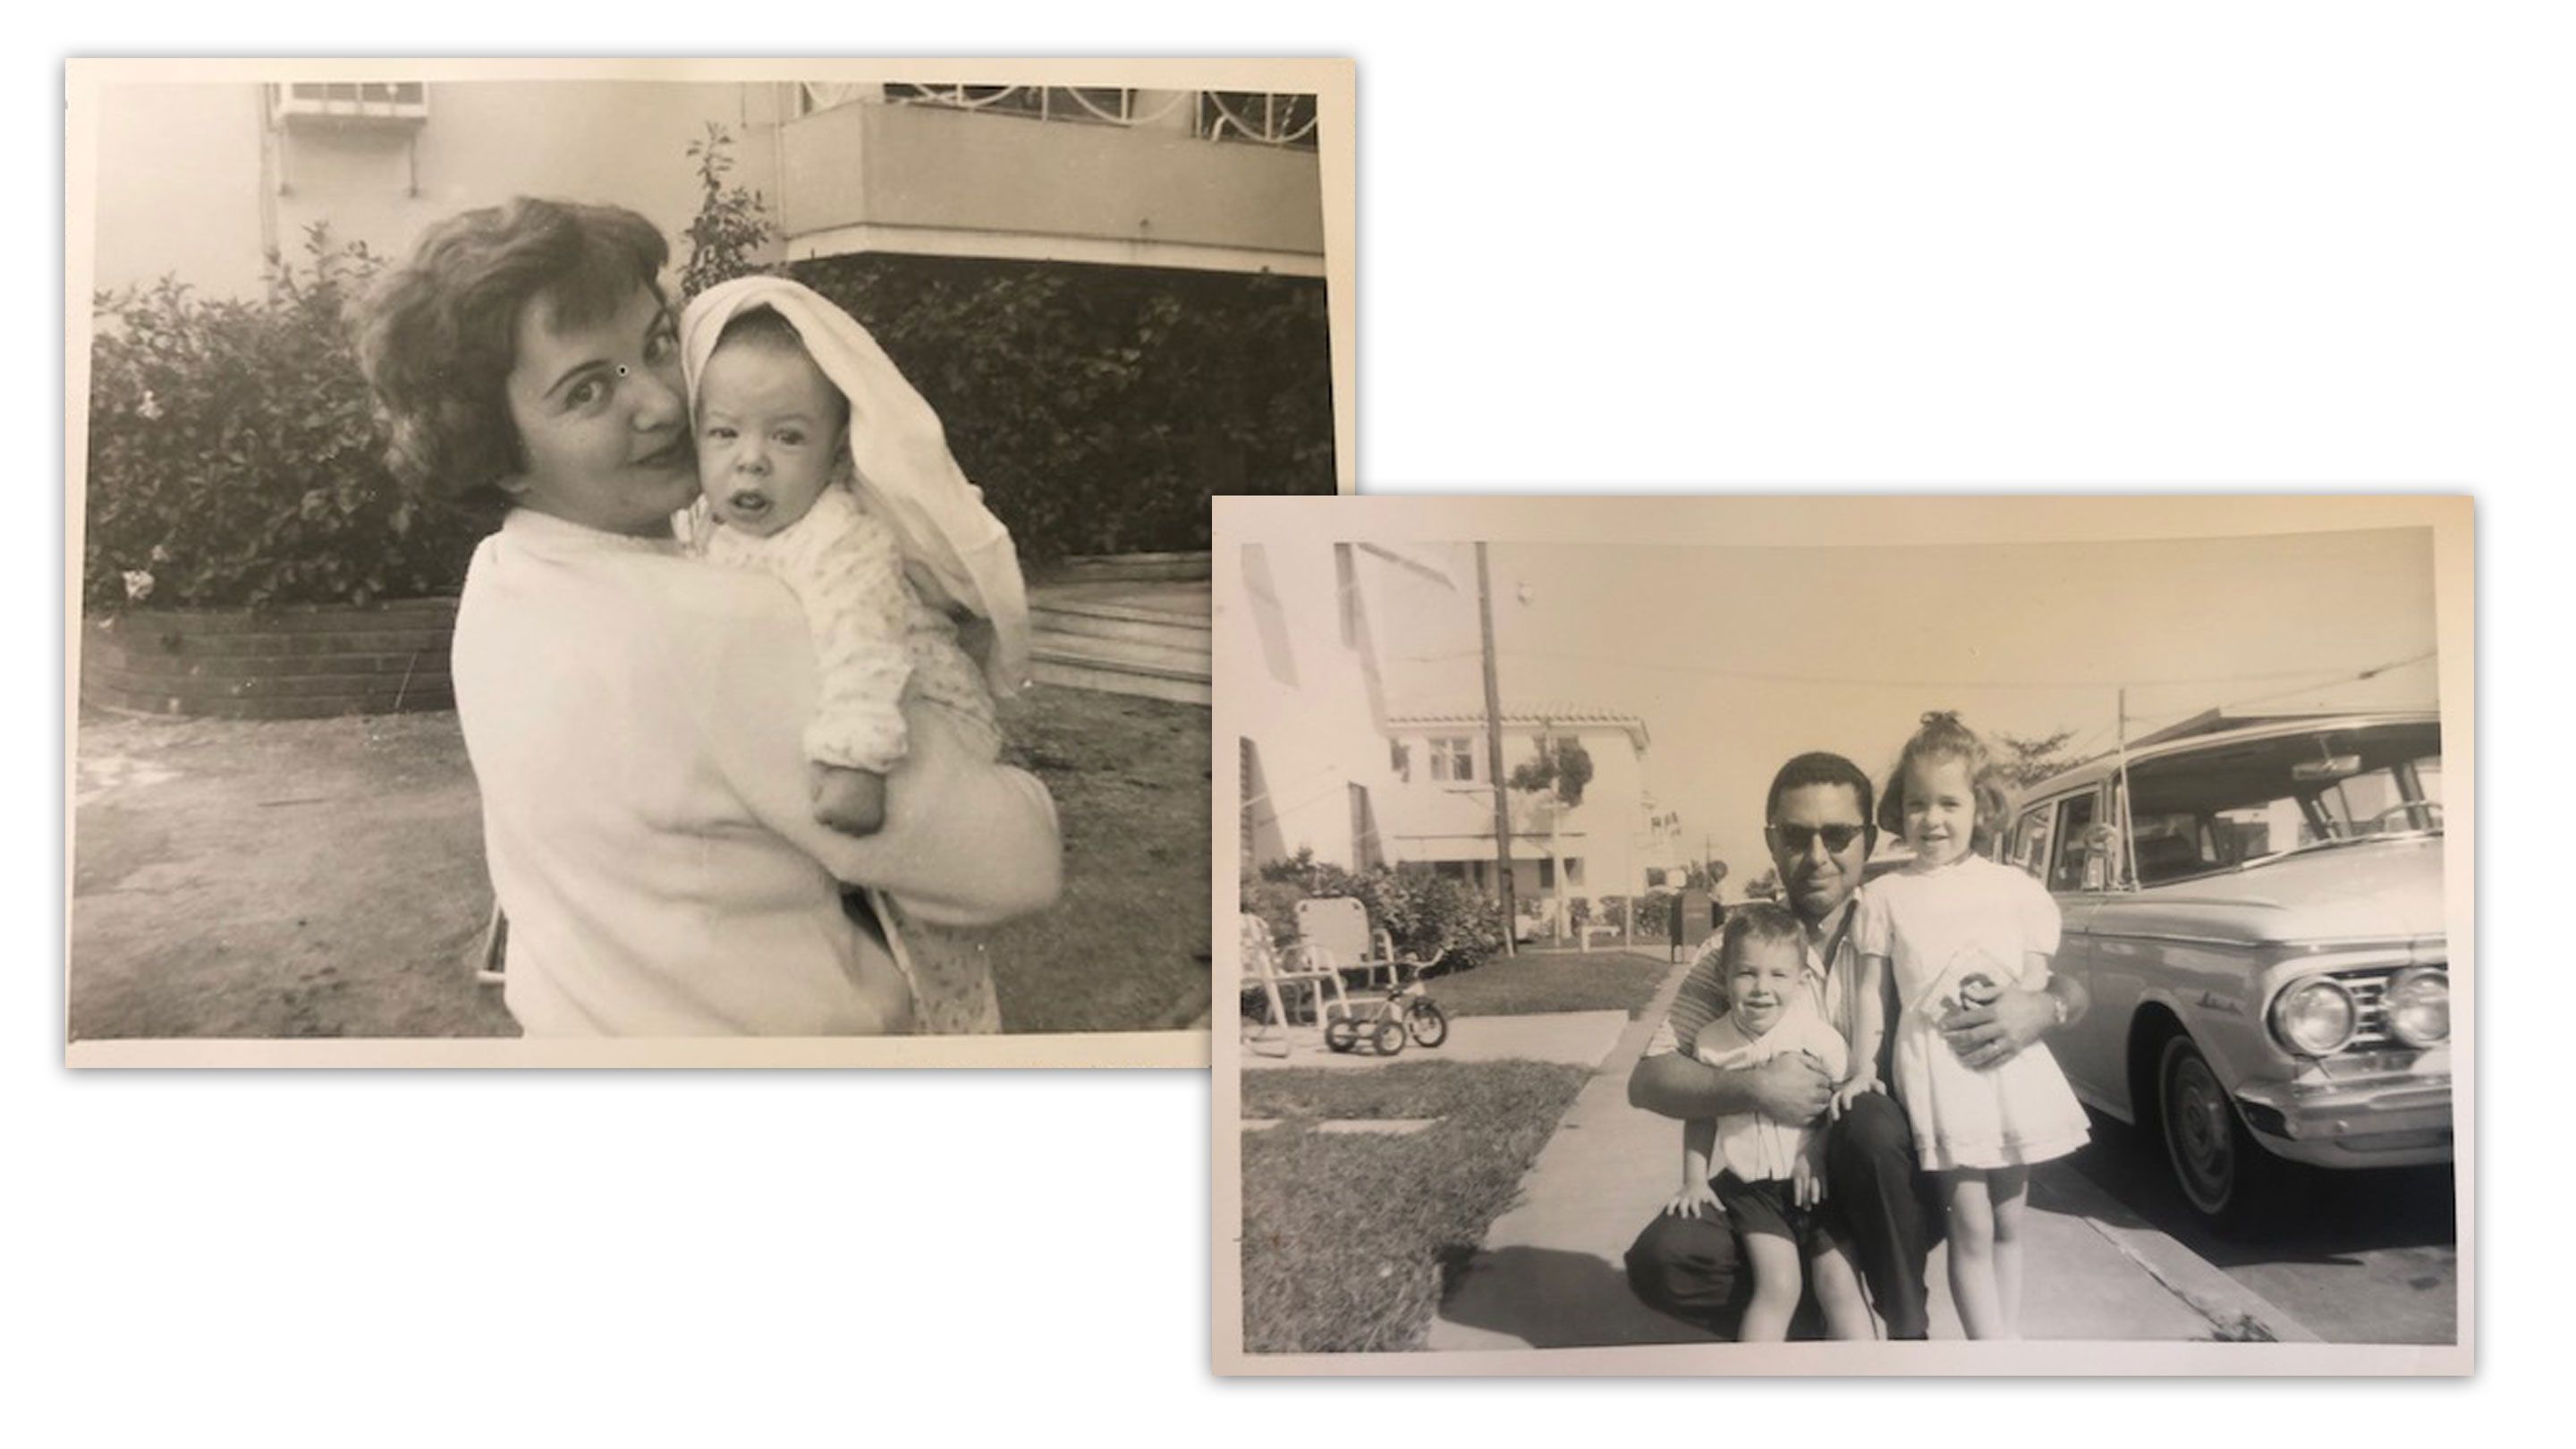 Mayorkas with his mother, Anita, in Havana, Cuba, and later with his father, Charles, and sister, Cathy, in Miami after the family moved to the U.S.